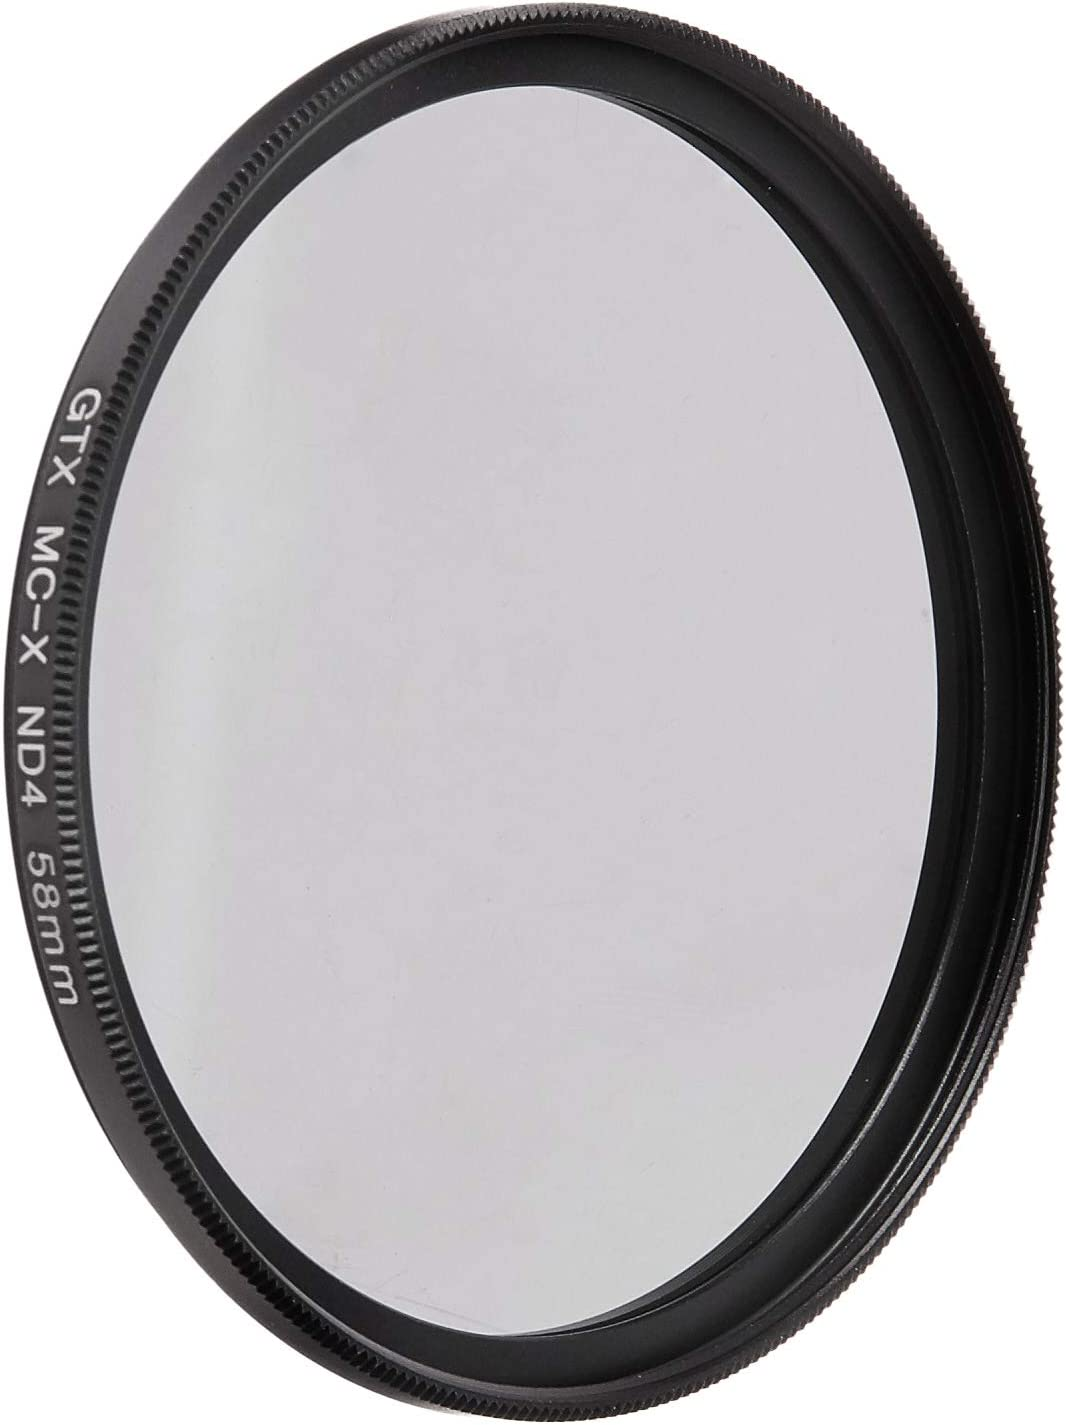 Black GTX FILTERS GF-X//ND482 X Series ND4 82mm Camera Lens Neutral Density Filter